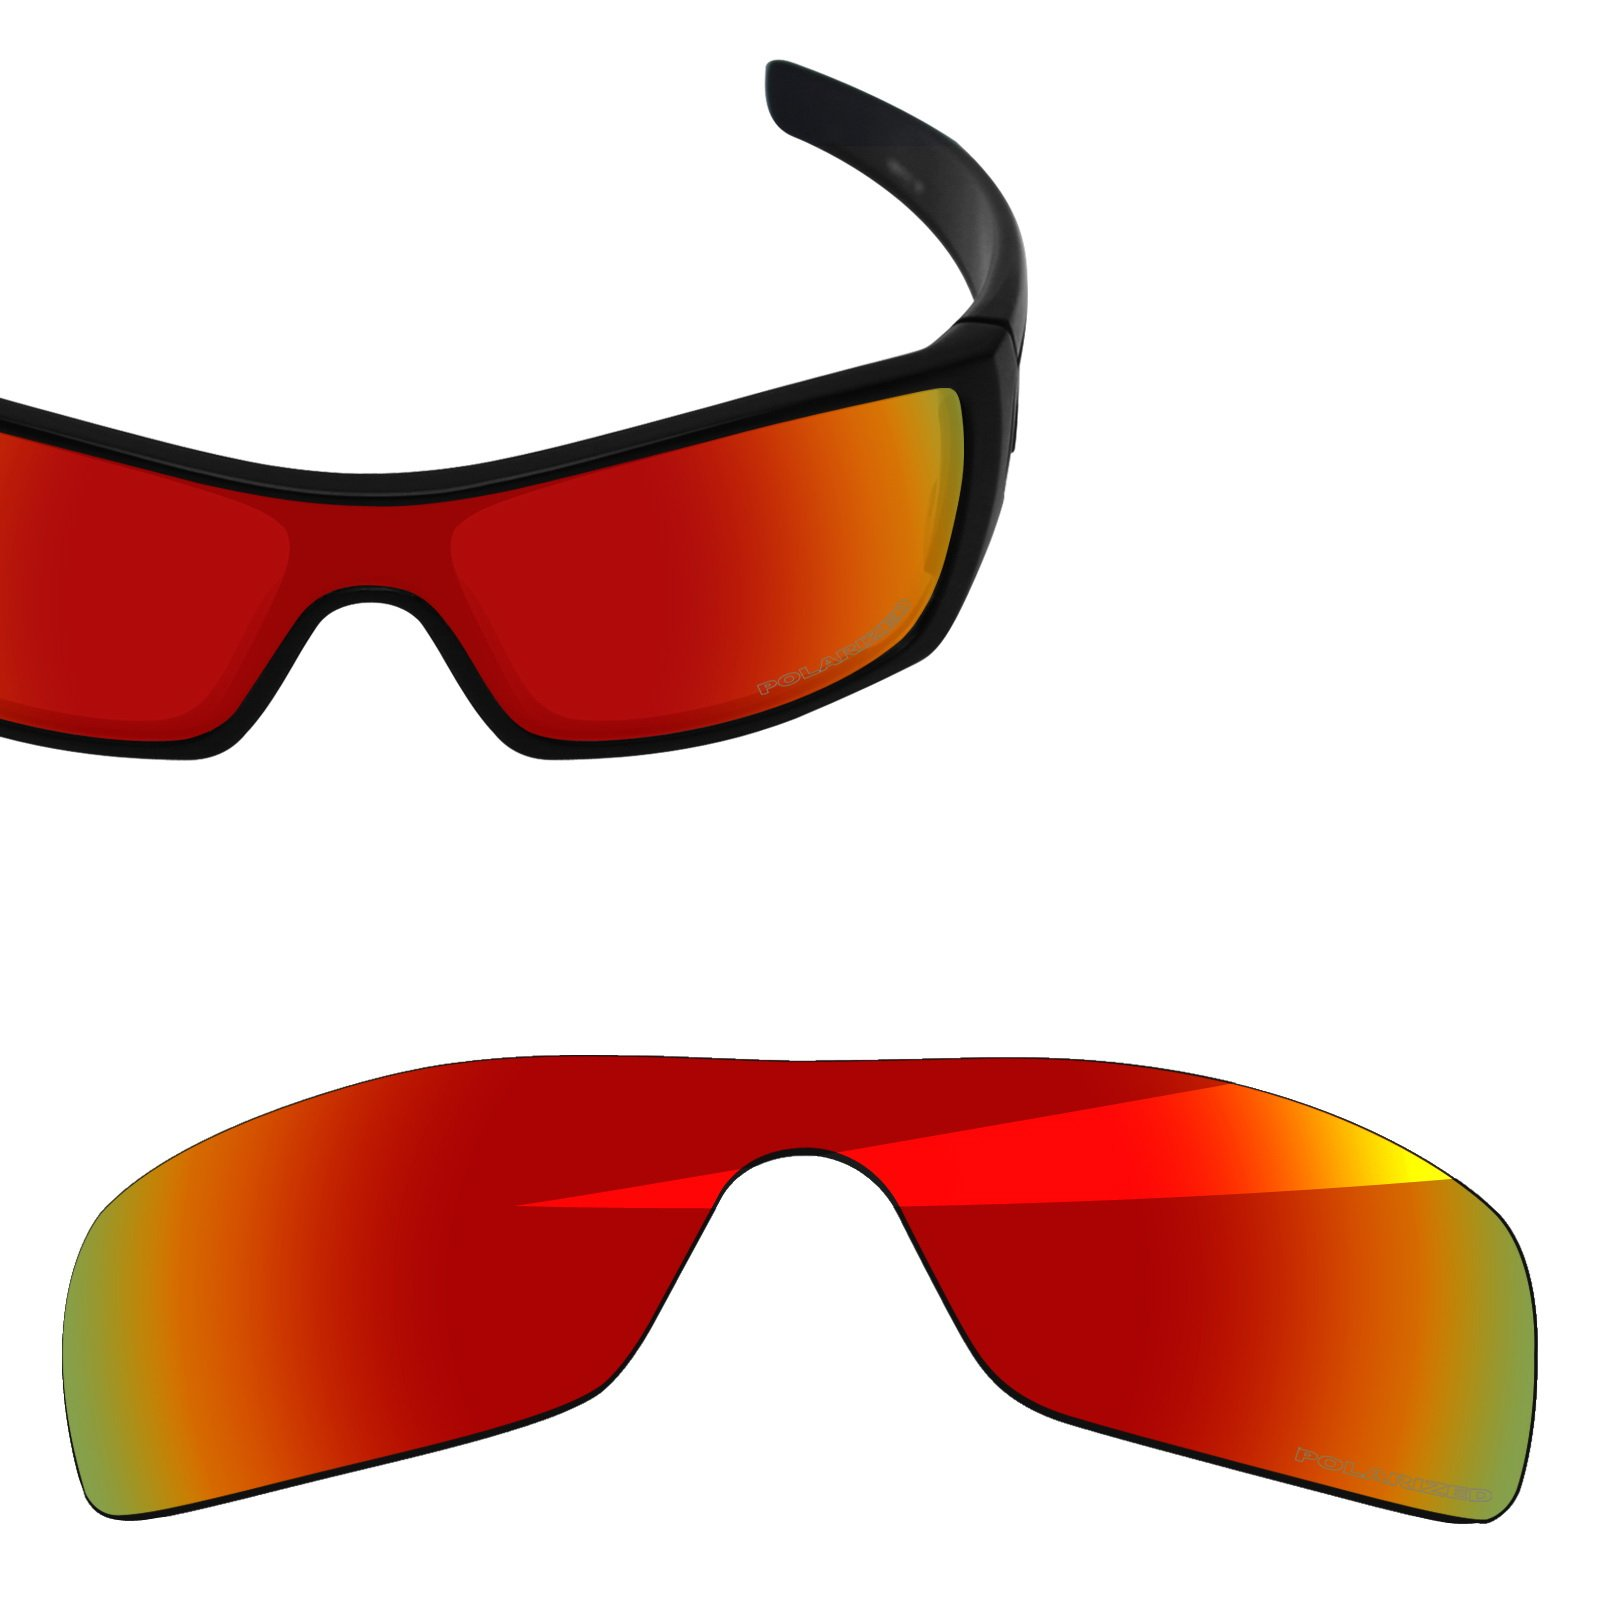 BlazerBuck Anti-salt Polarized Replacement Lenses for Oakley Batwolf - Fire Red by BlazerBuck